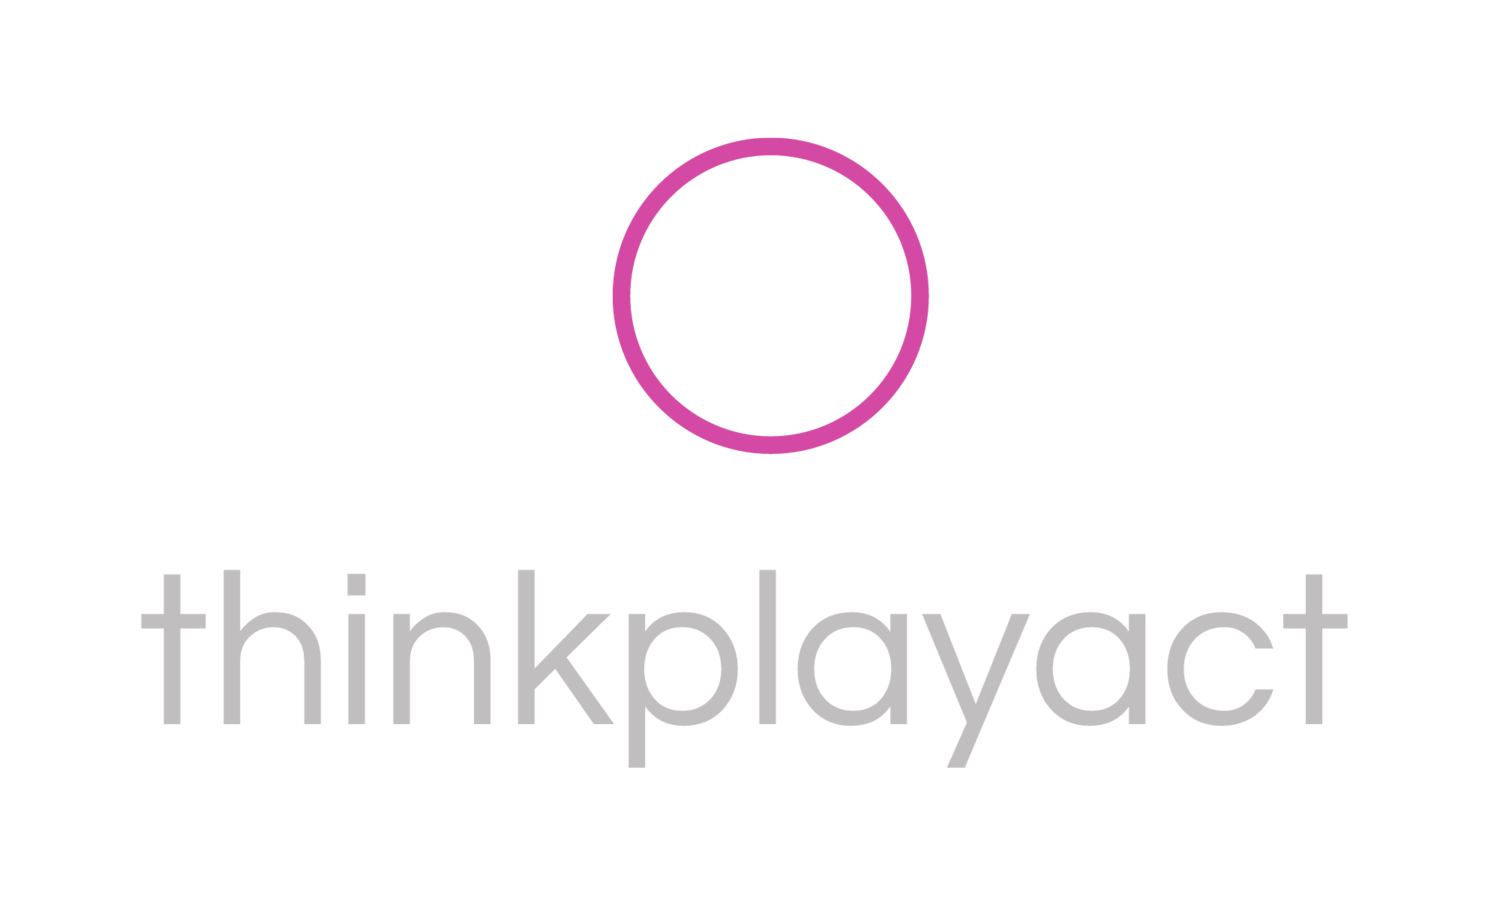 thinkplayact